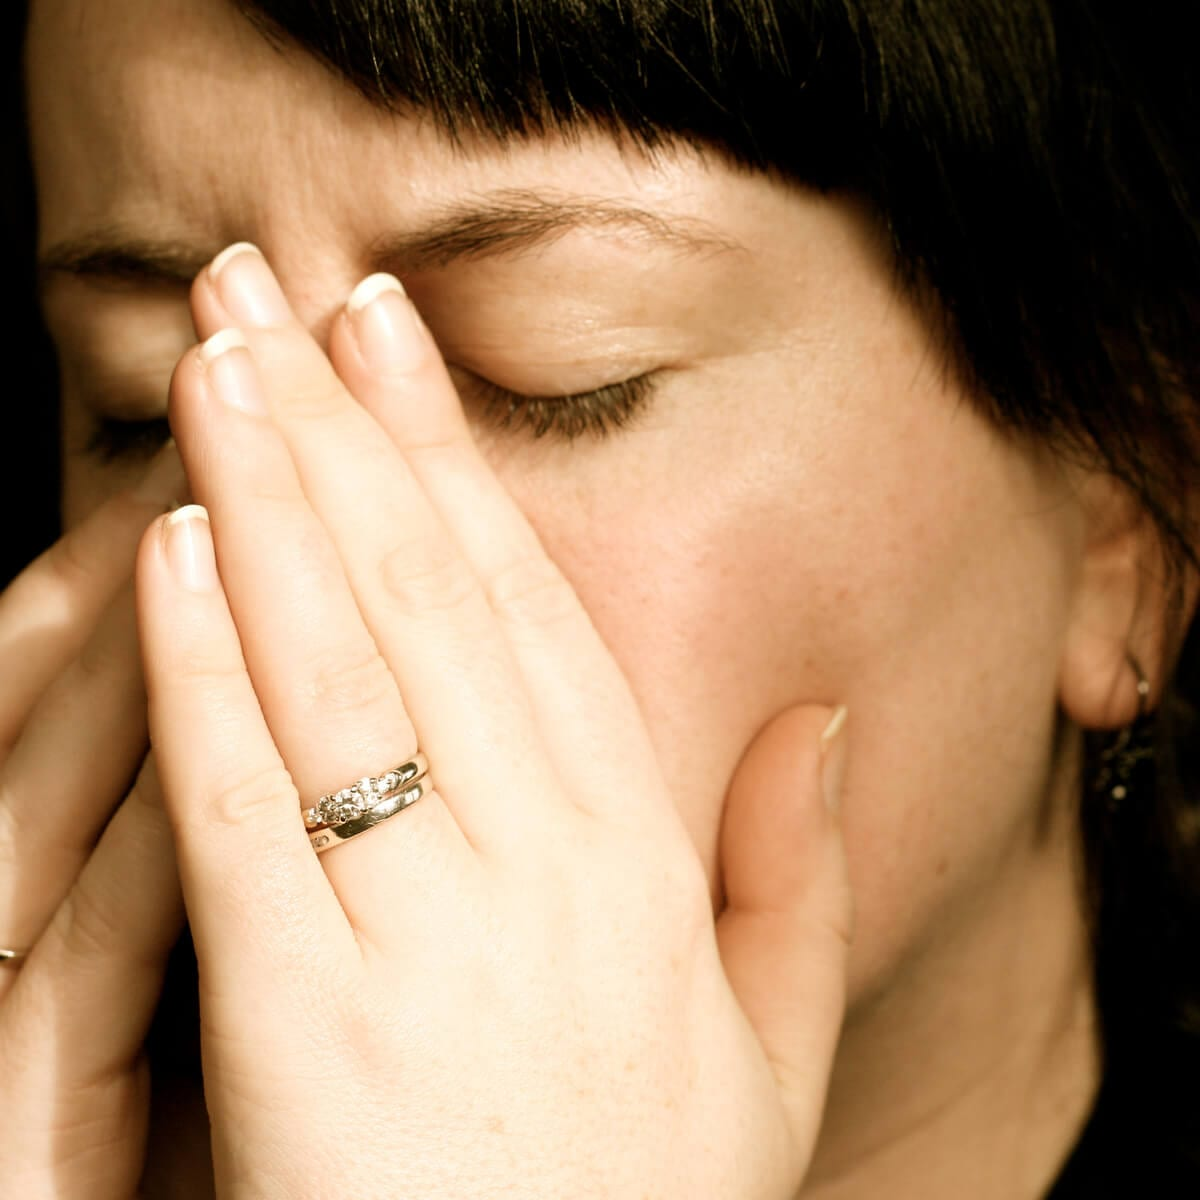 woman covering her hands to cough